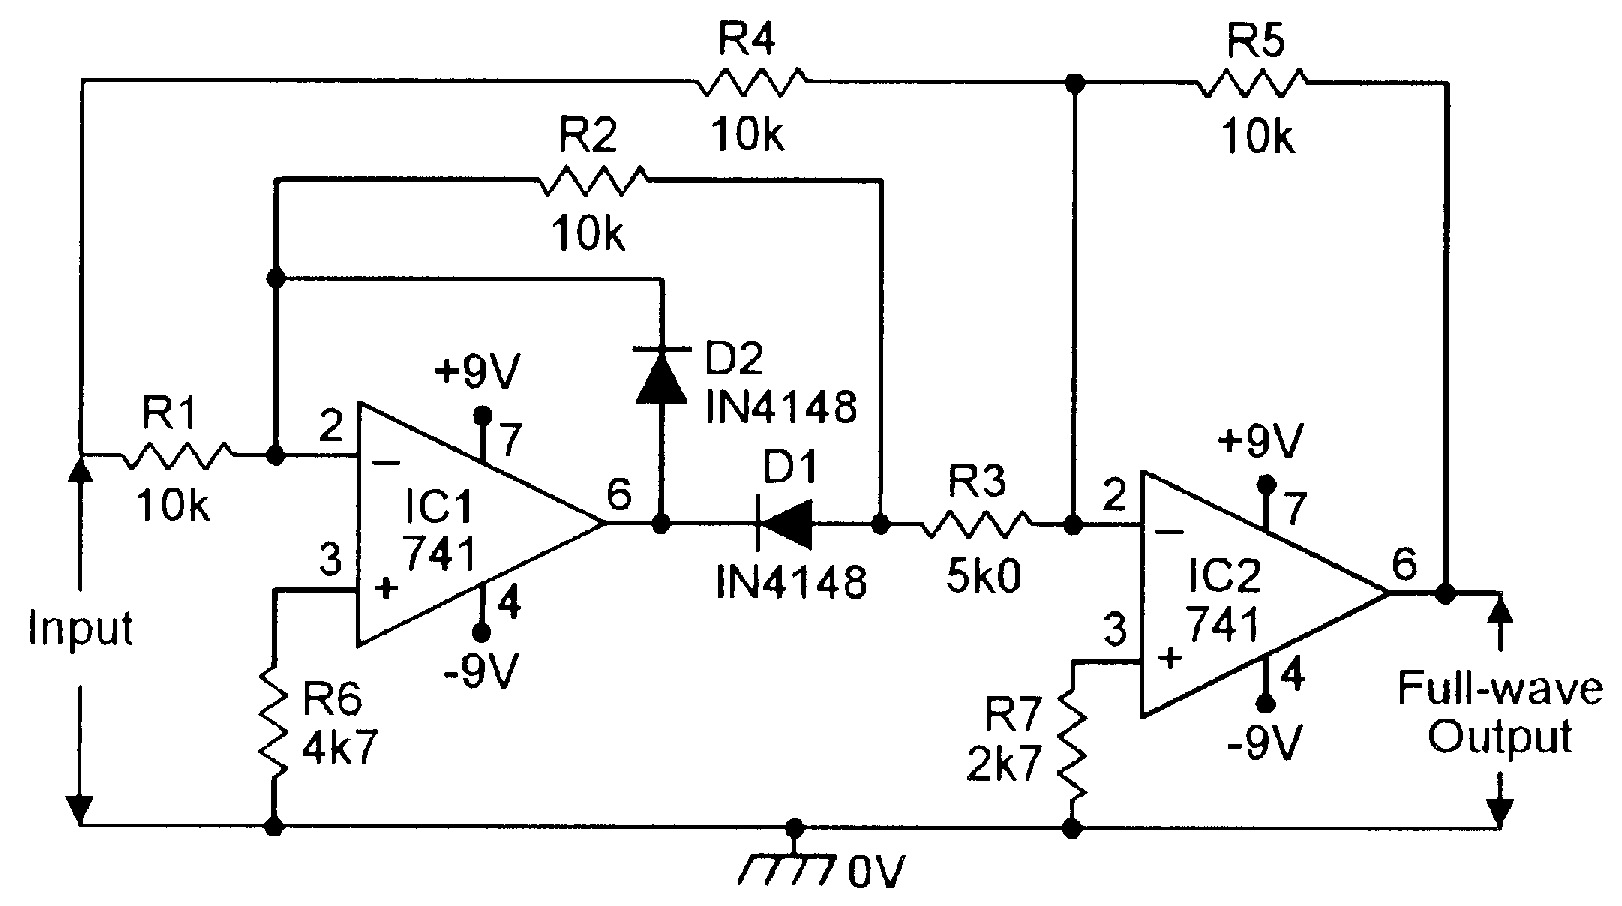 hight resolution of voltage level detector circuit diagram tradeoficcom wiring diagram precision high voltage regulator circuit diagram tradeoficcom